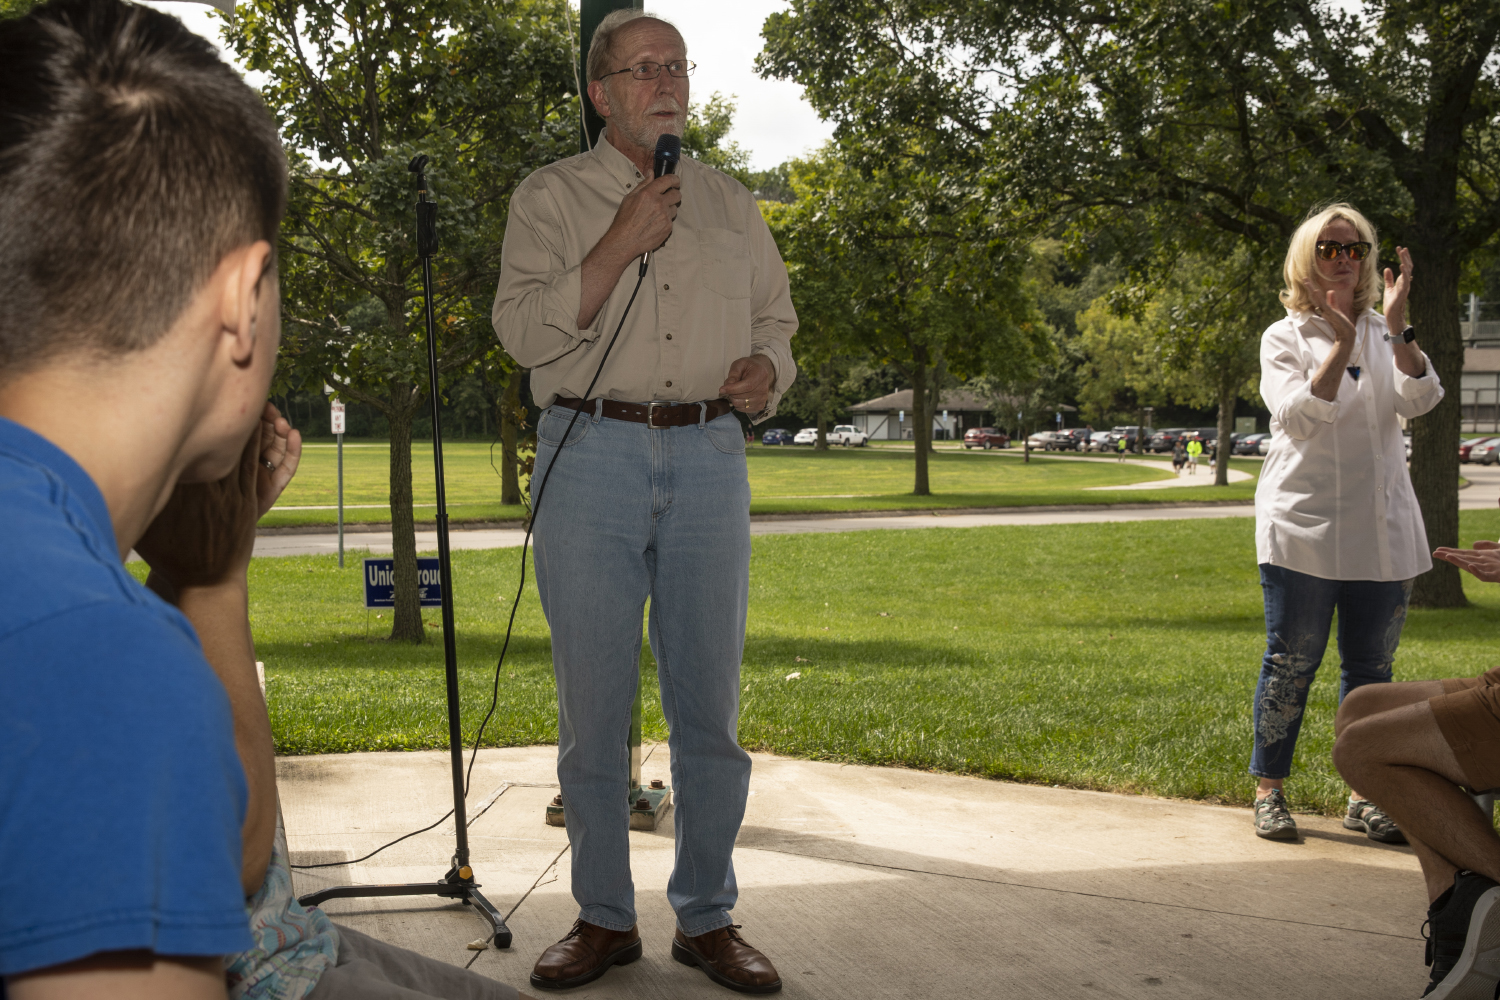 Rep. Dave Loebsack speaks during the Iowa City Federation of Labor Labor Day Picnic in City Park on September 2, 2019. Among the candidates to attend the event were Sen. Michael Bennet and Former Vice President Joe Biden.